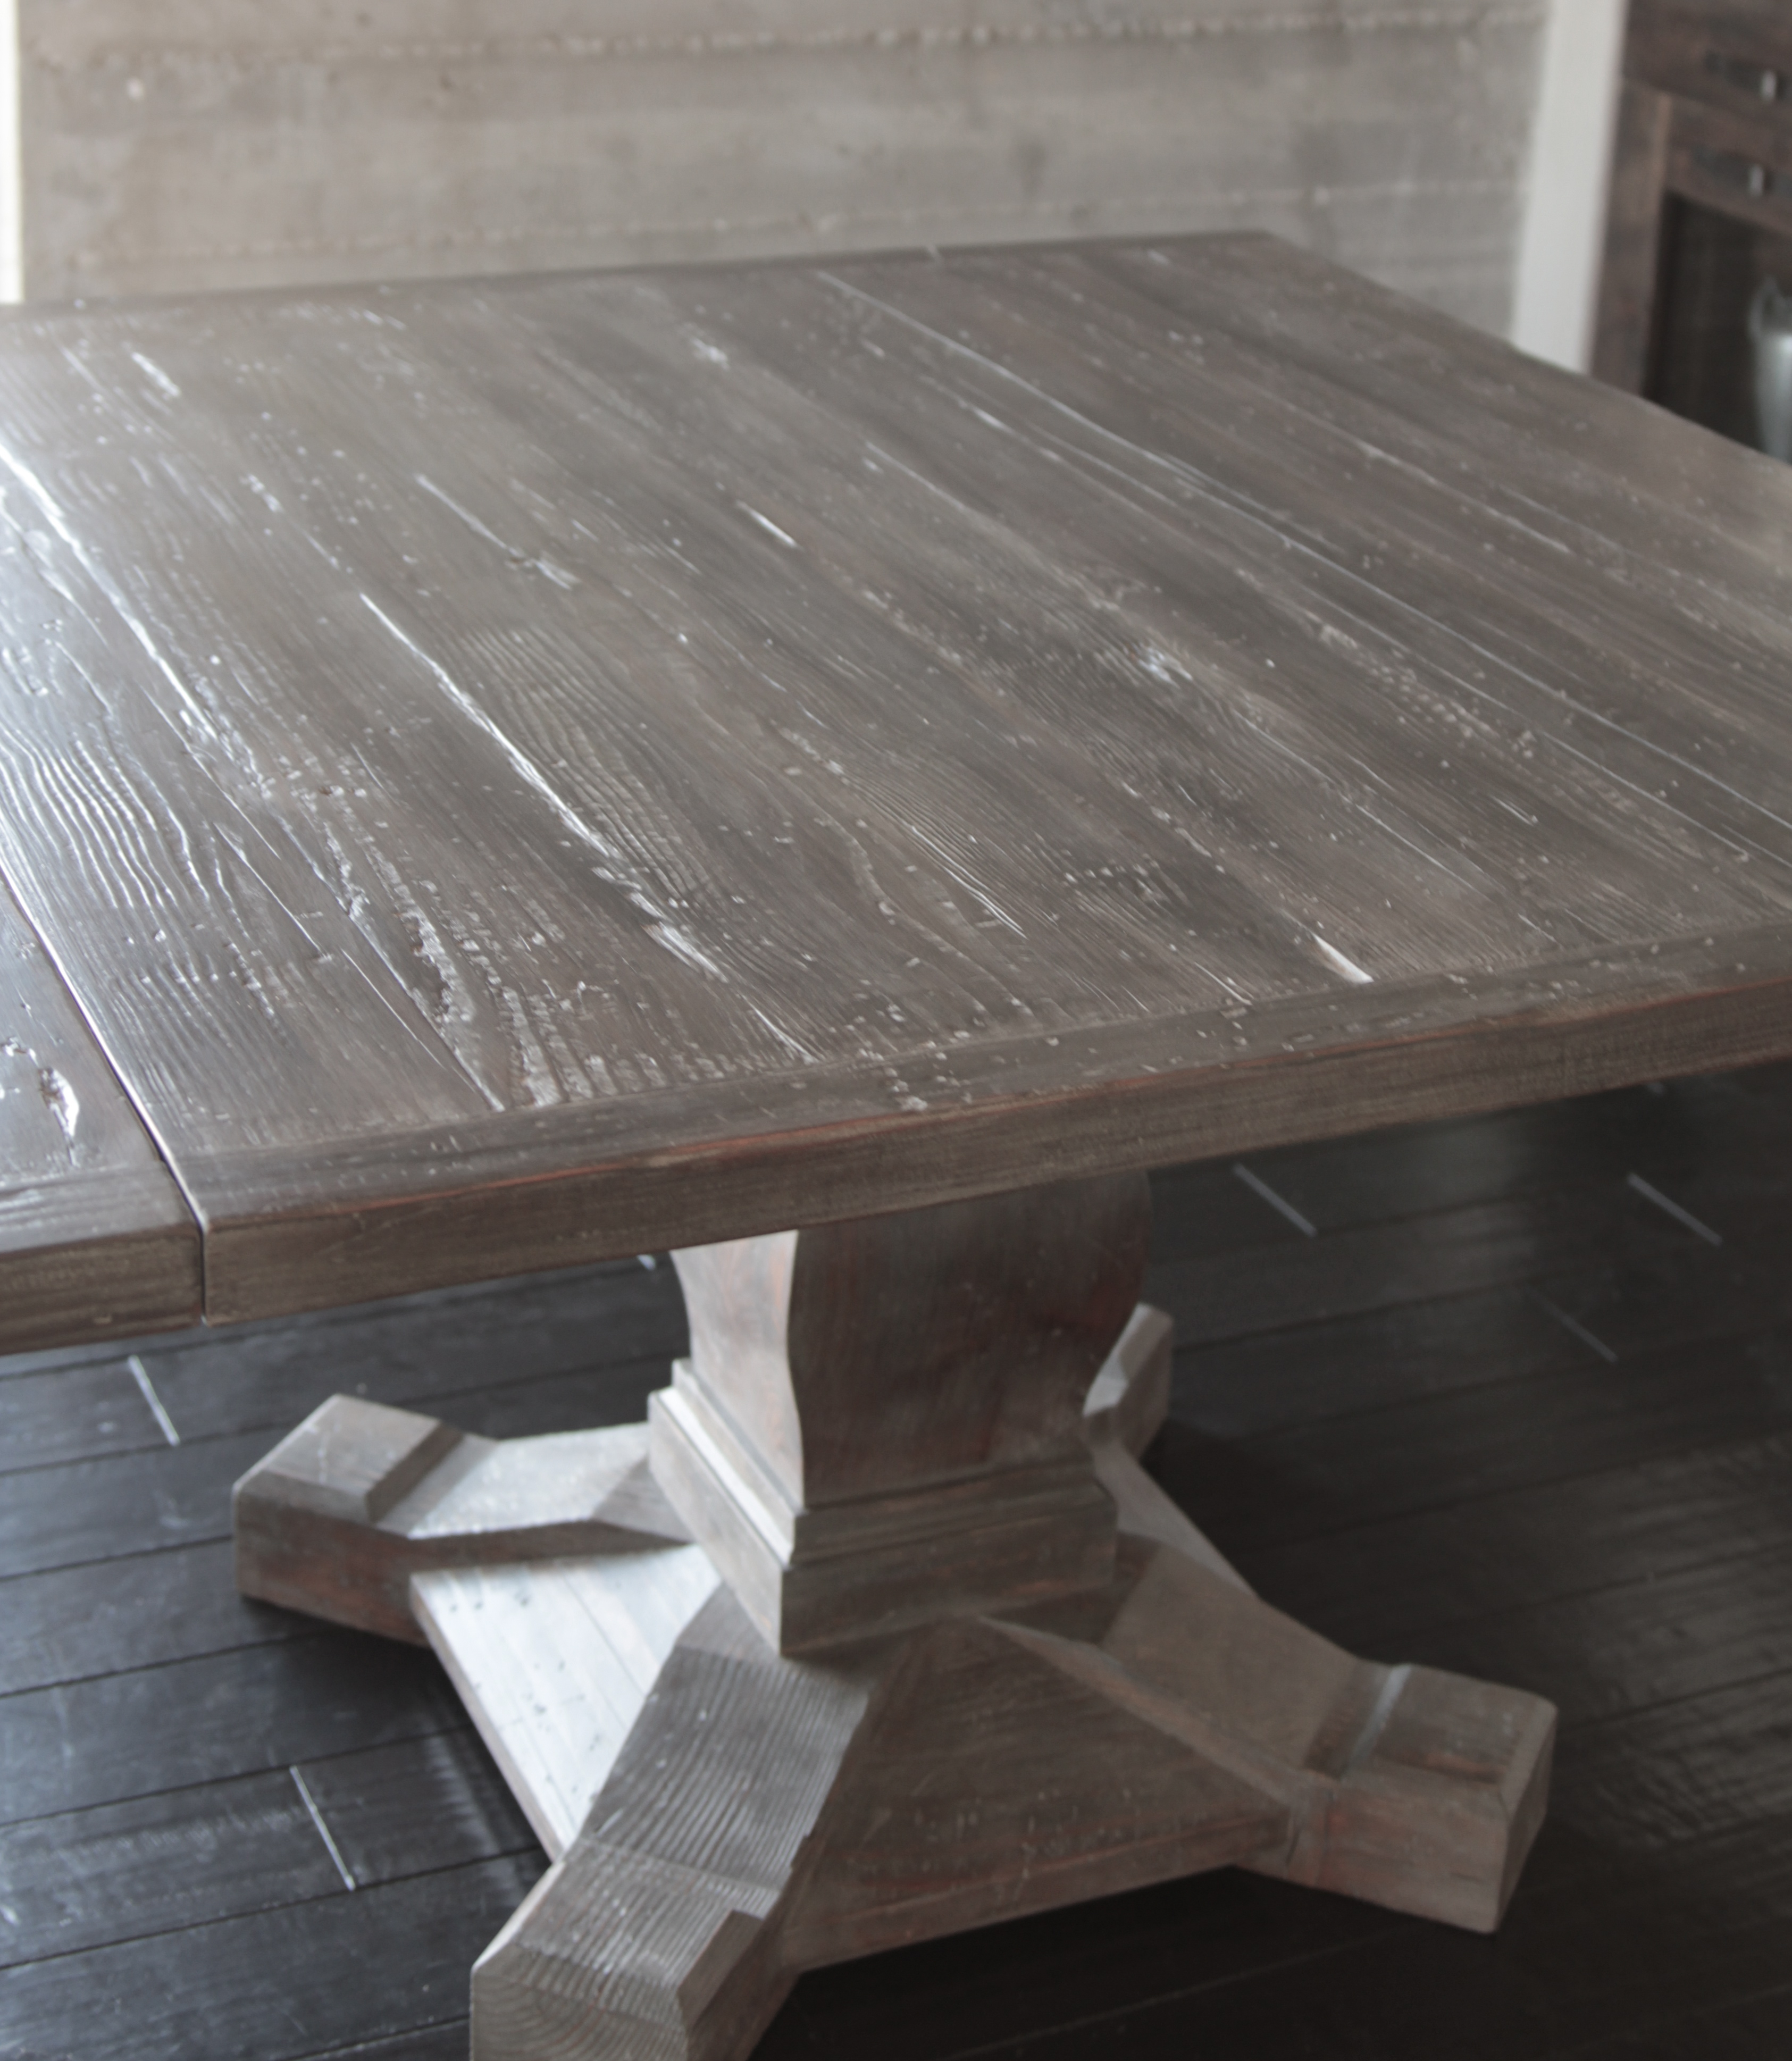 Square pedestal dining table - I Salvaged The Planks For This Table Top From An Old Beach House In Morro Bay Thanks For The Wood Chip